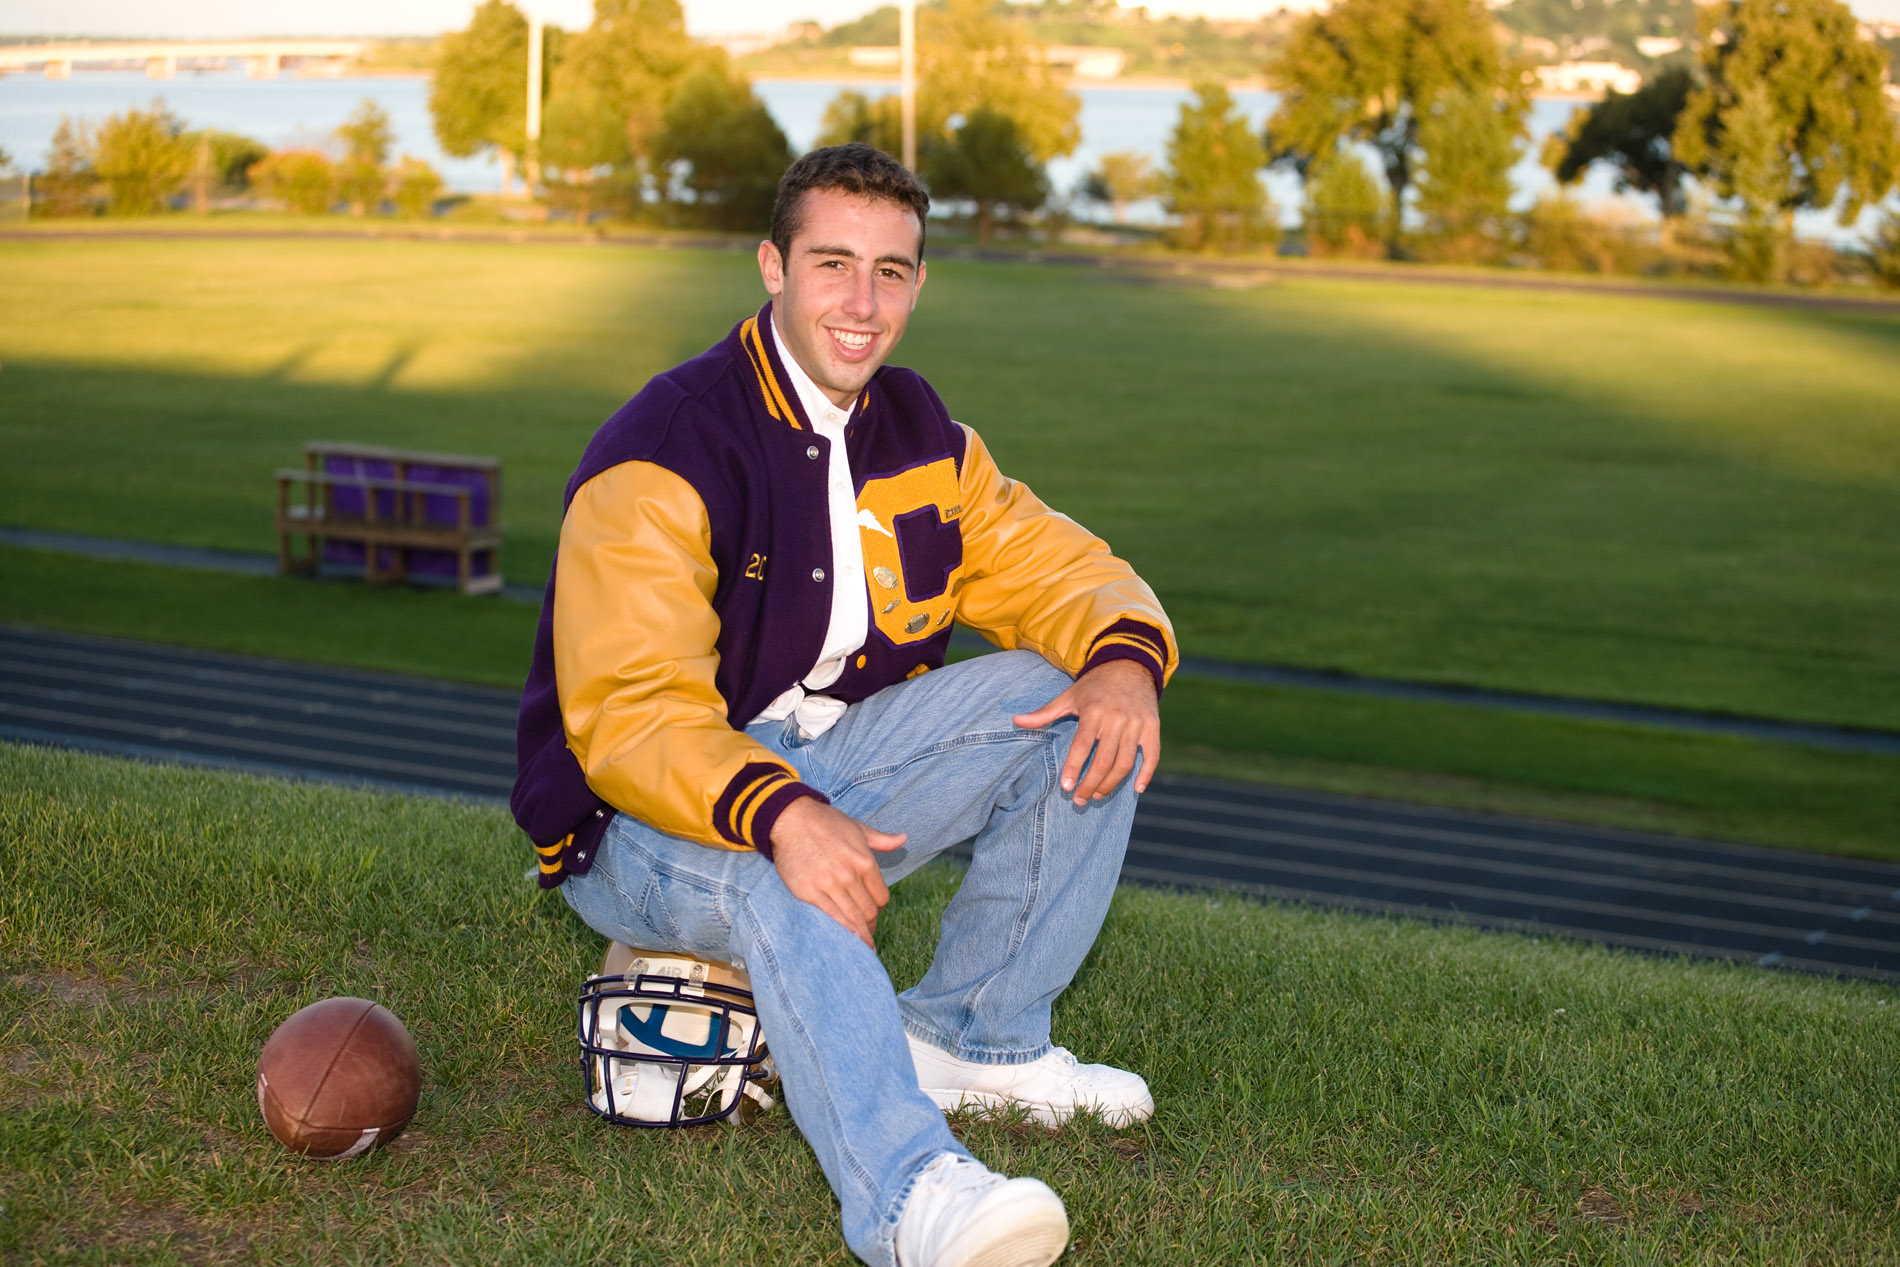 cheverus high school senior photographed at school football field in portland, maine